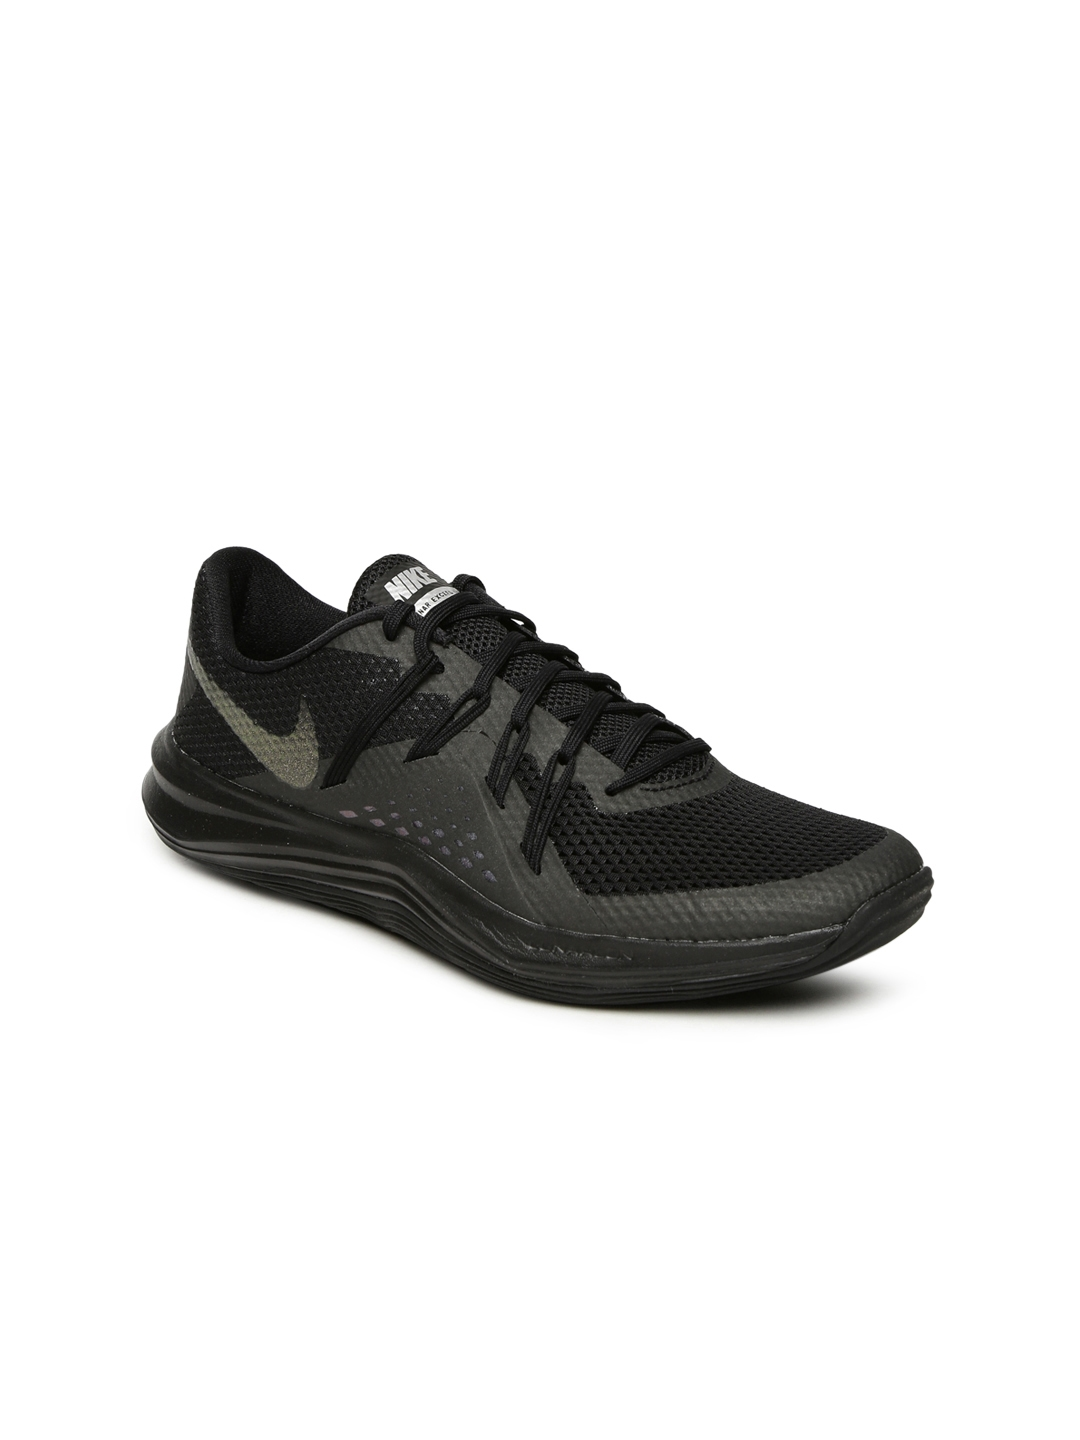 5a32bdbf466 11507698186369-Nike-Women-Charcoal-Training-or-Gym-Shoes-7251507698186225-1 .jpg